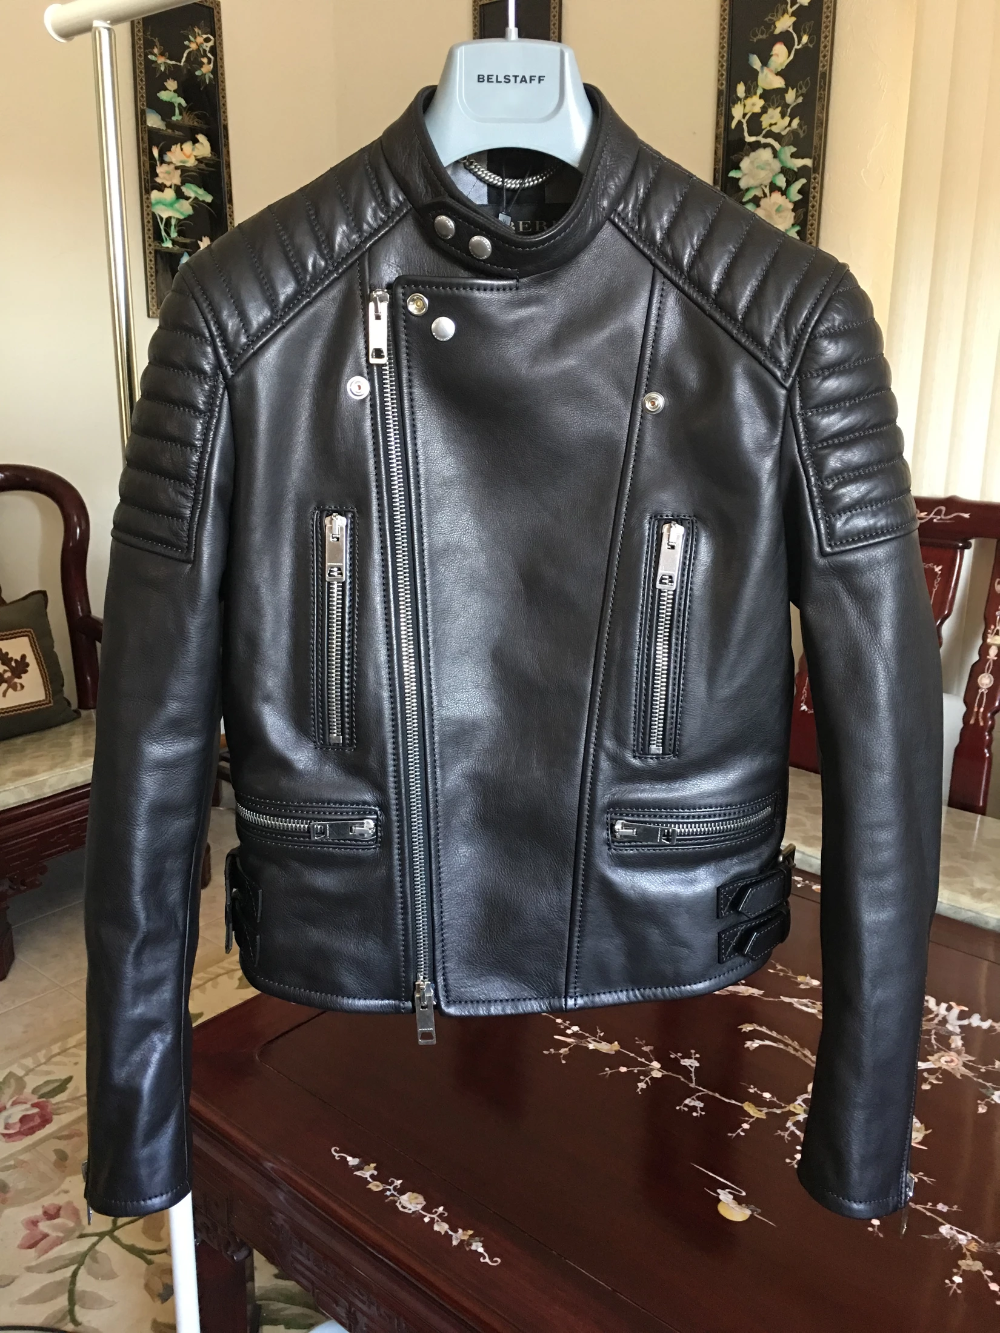 Burberry Prorsum One Of A Kind Runway Channel Quilted Calfskin Leather Motorcycle Biker Leather Jacket Outfit Men Leather Jacket Men Mens Leather Jacket Biker [ 1333 x 1000 Pixel ]